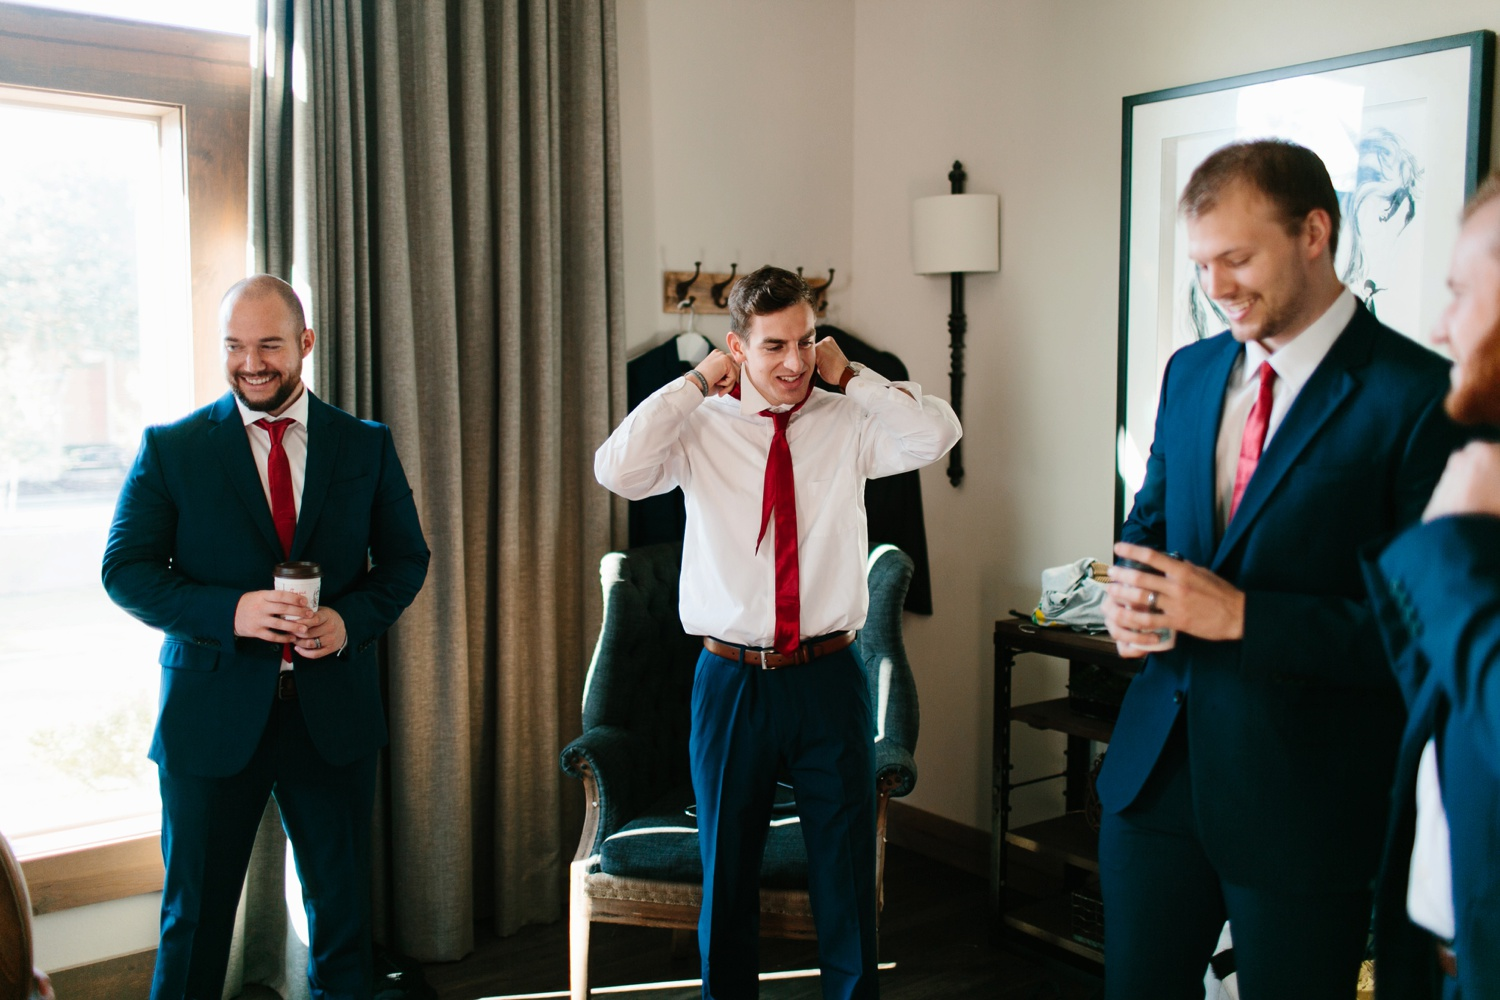 Grant + Lysette | a vibrant, deep burgundy and navy, and mixed metals wedding at Hidden Pines Chapel by North Texas Wedding Photographer Rachel Meagan Photography 012